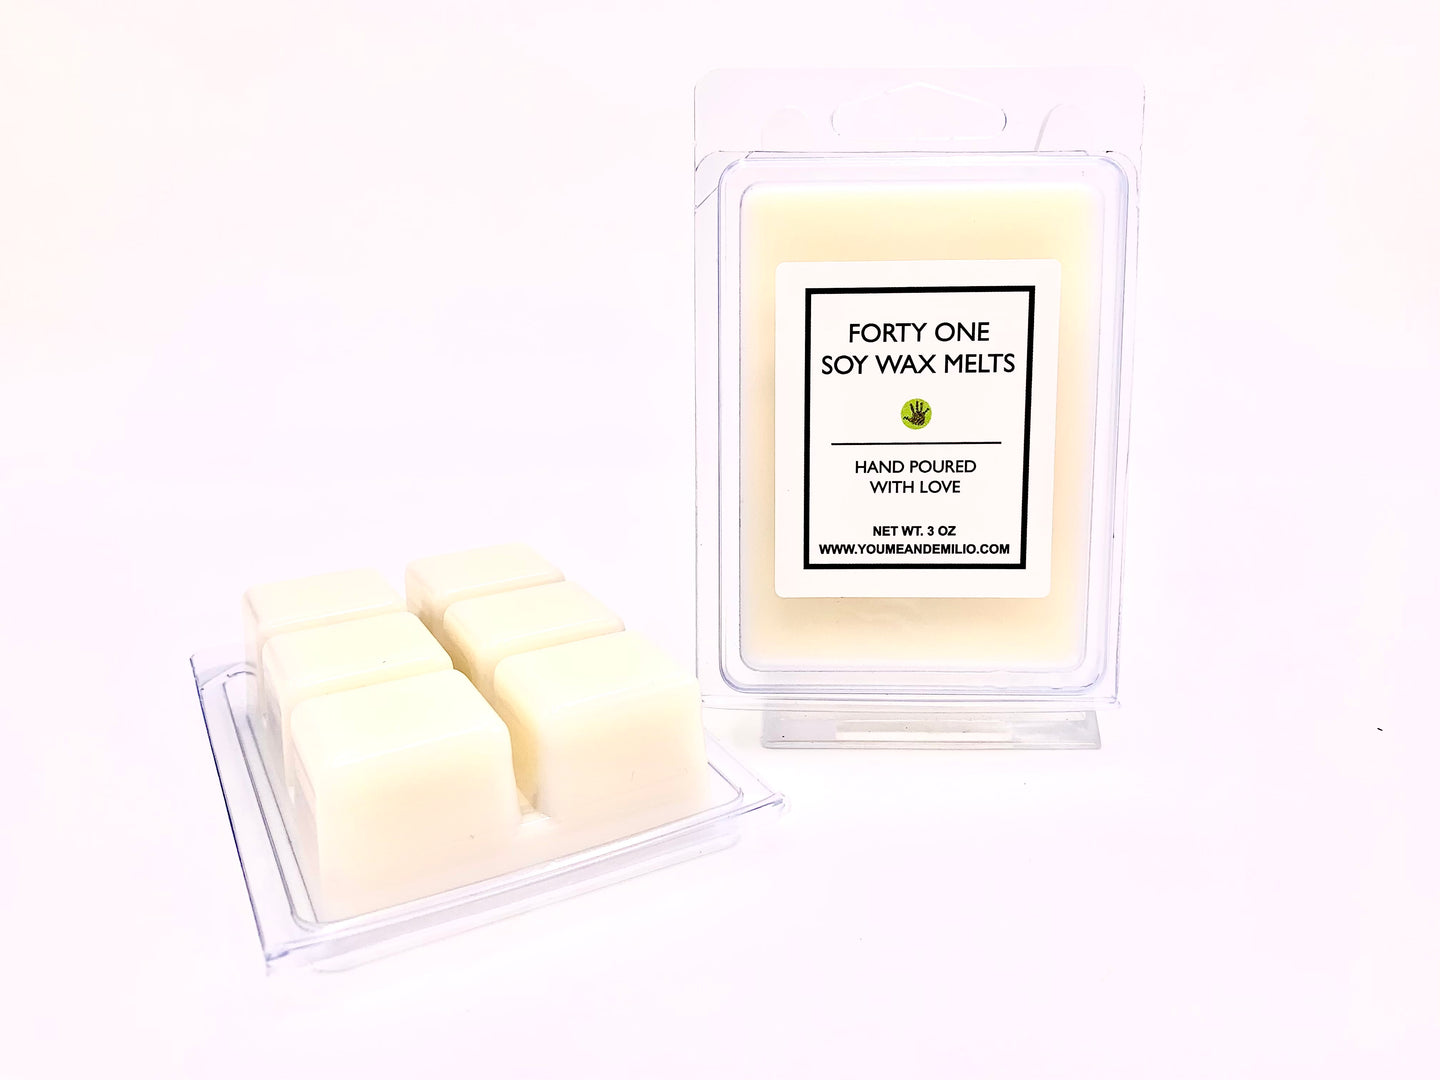 FORTY ONE | Soy Wax Melts